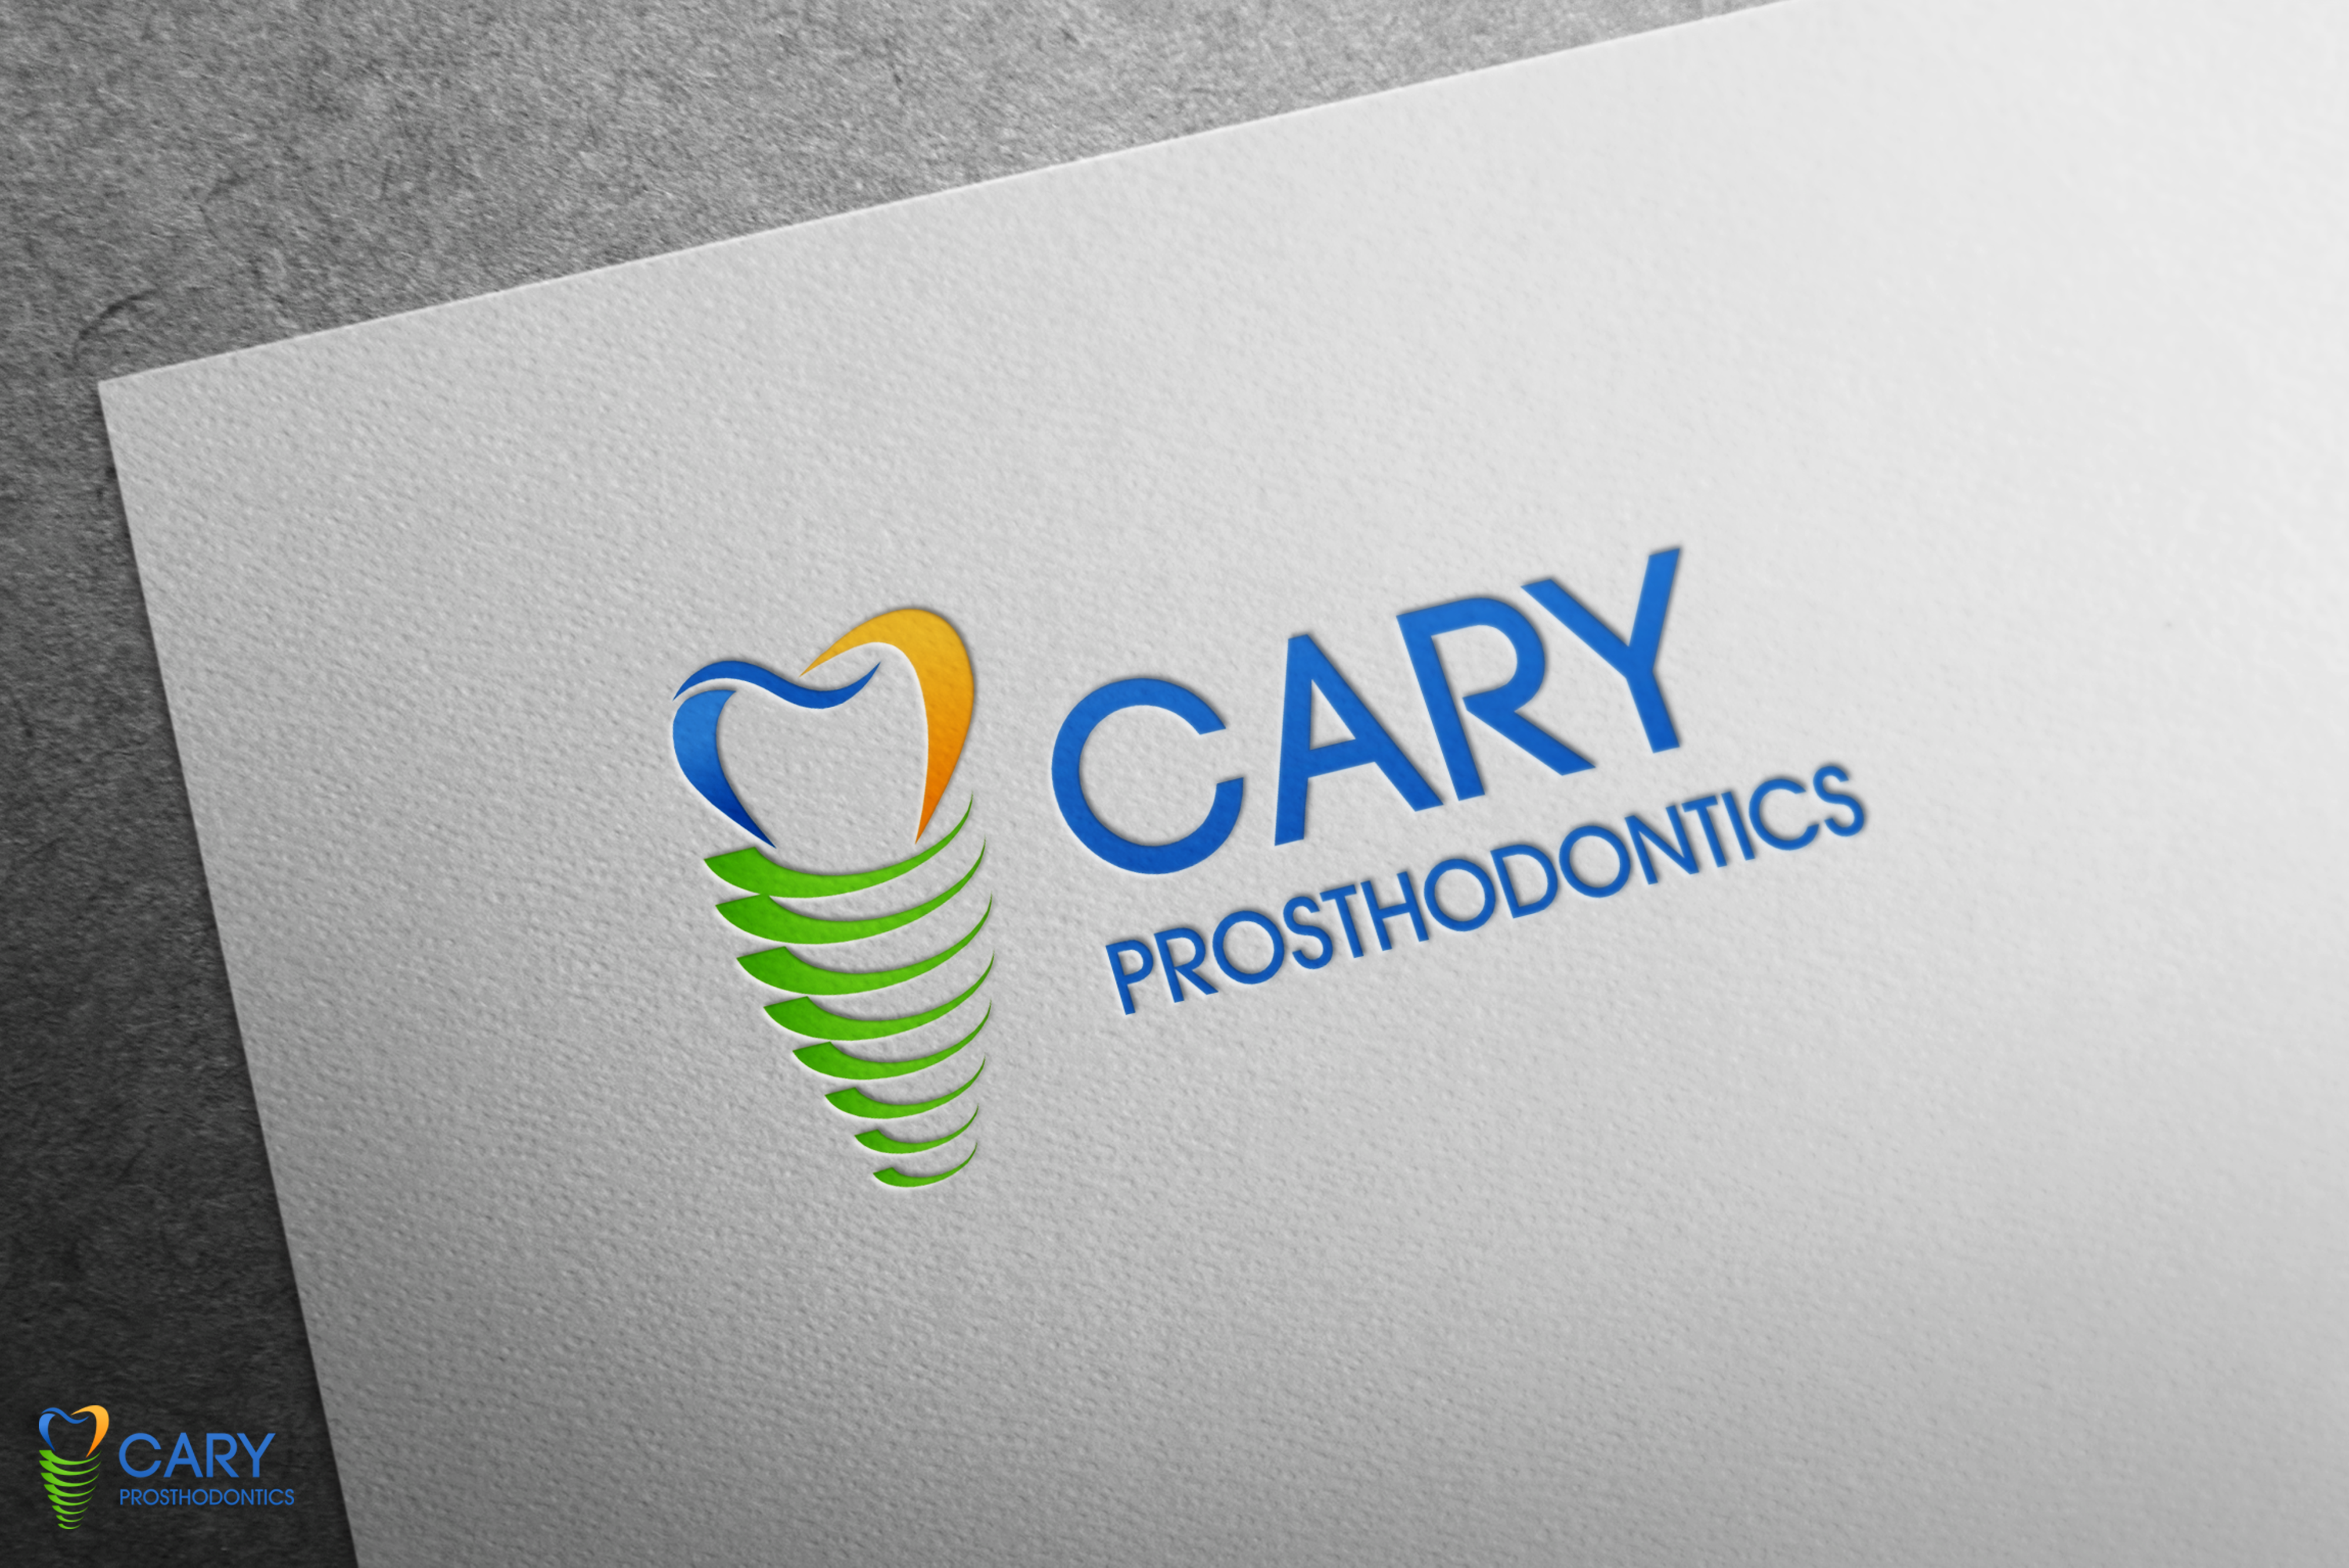 Logo Design by Hania Hassaan - Entry No. 113 in the Logo Design Contest Cary Prosthodontics Logo Design.